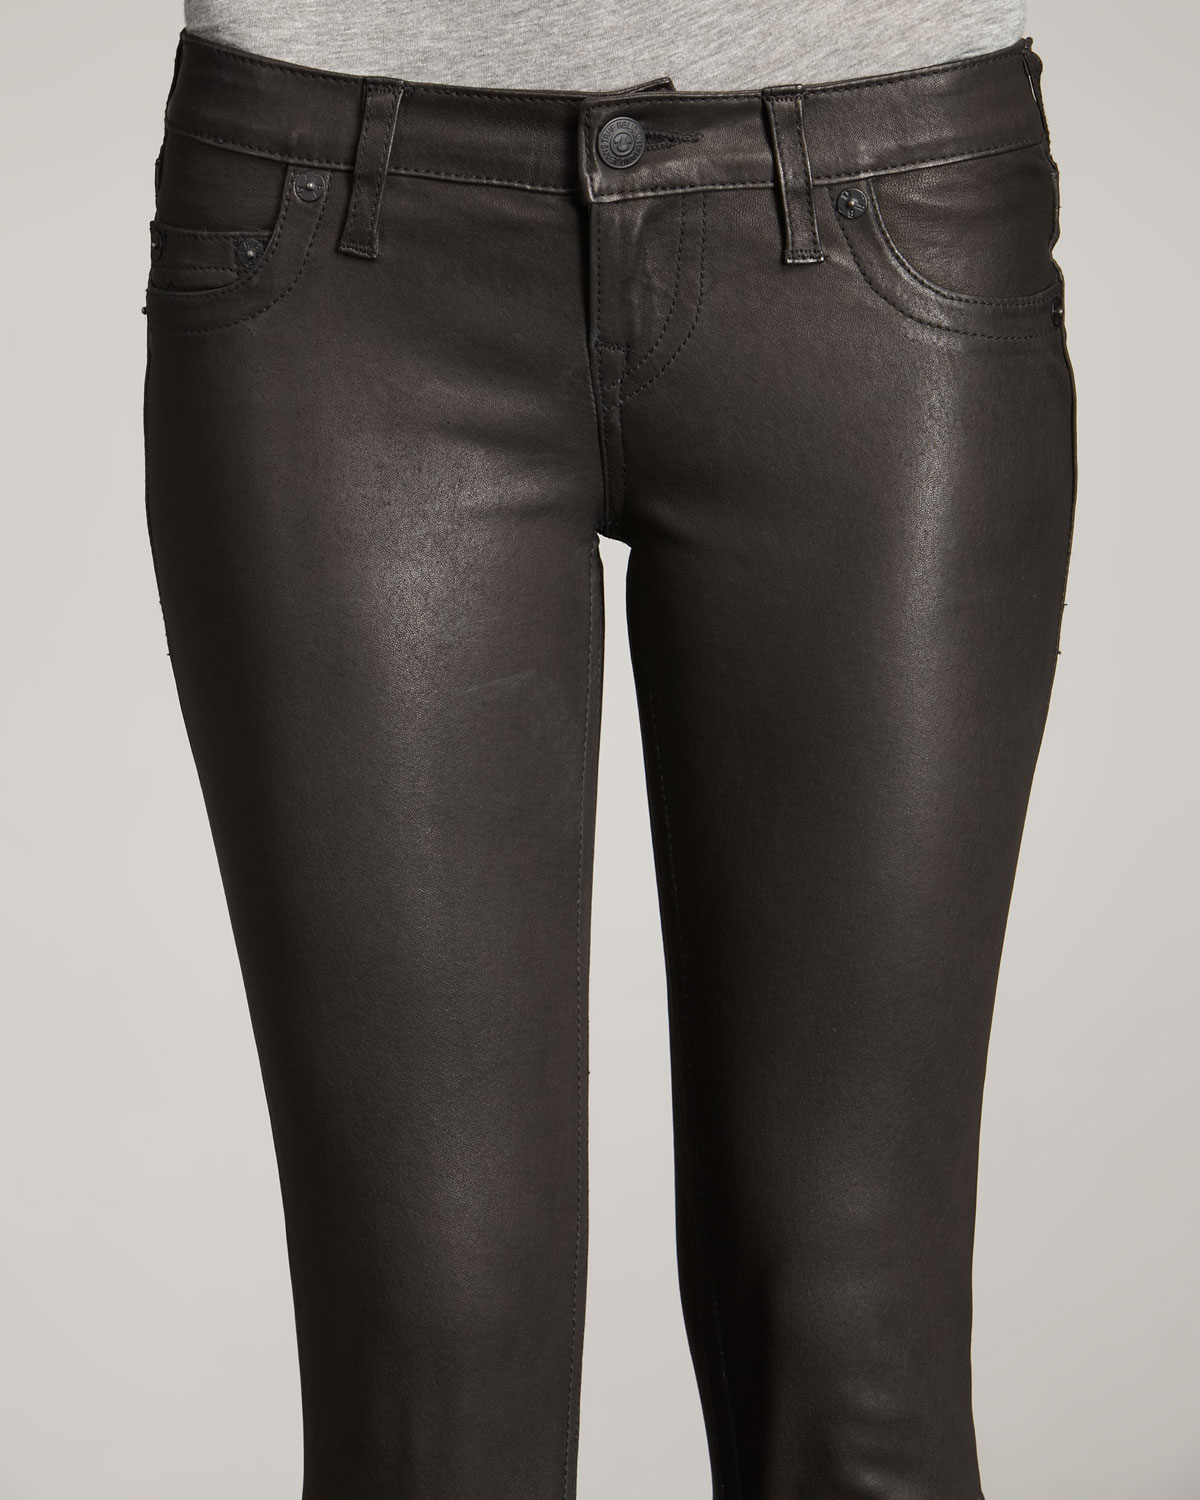 True religion Casey Leather-look Leggings, Black in Black | Lyst